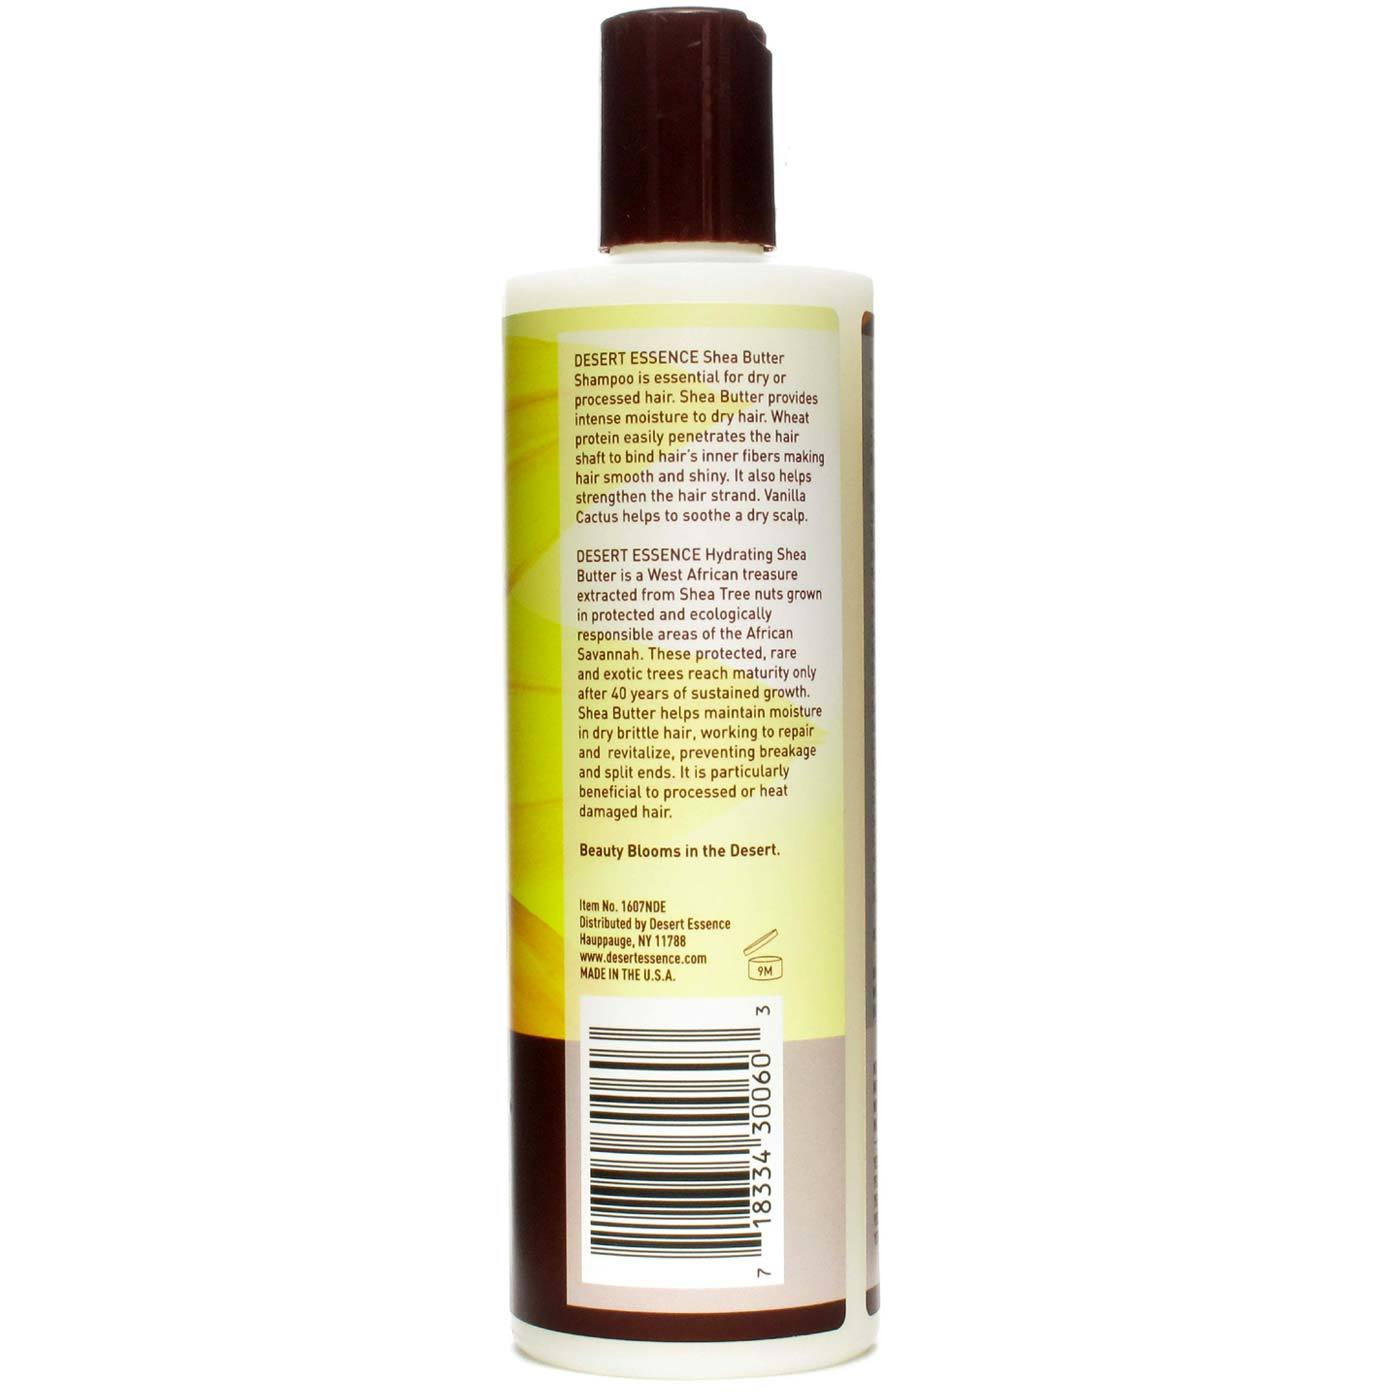 Desert Essence was founded in to bring the best of nature's offerings to personal care regimens everywhere.